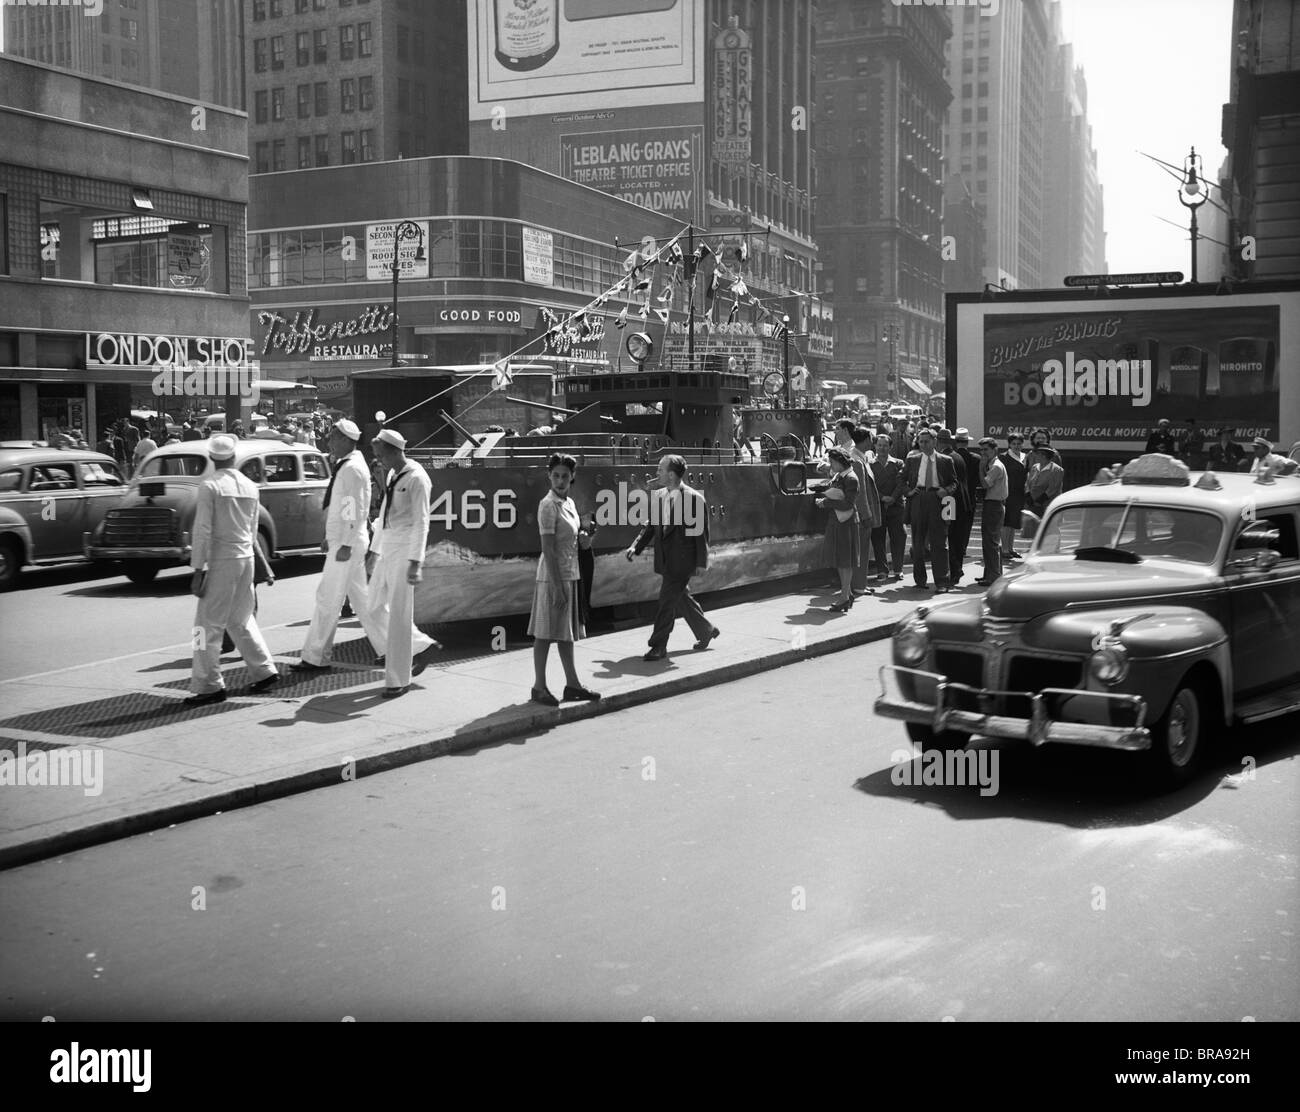 1940s 1942 MINIATURE DESTROYER ACTS AS A NAVY RECRUITING STATION IN TIMES SQUARE NEW YORK CITY - Stock Image